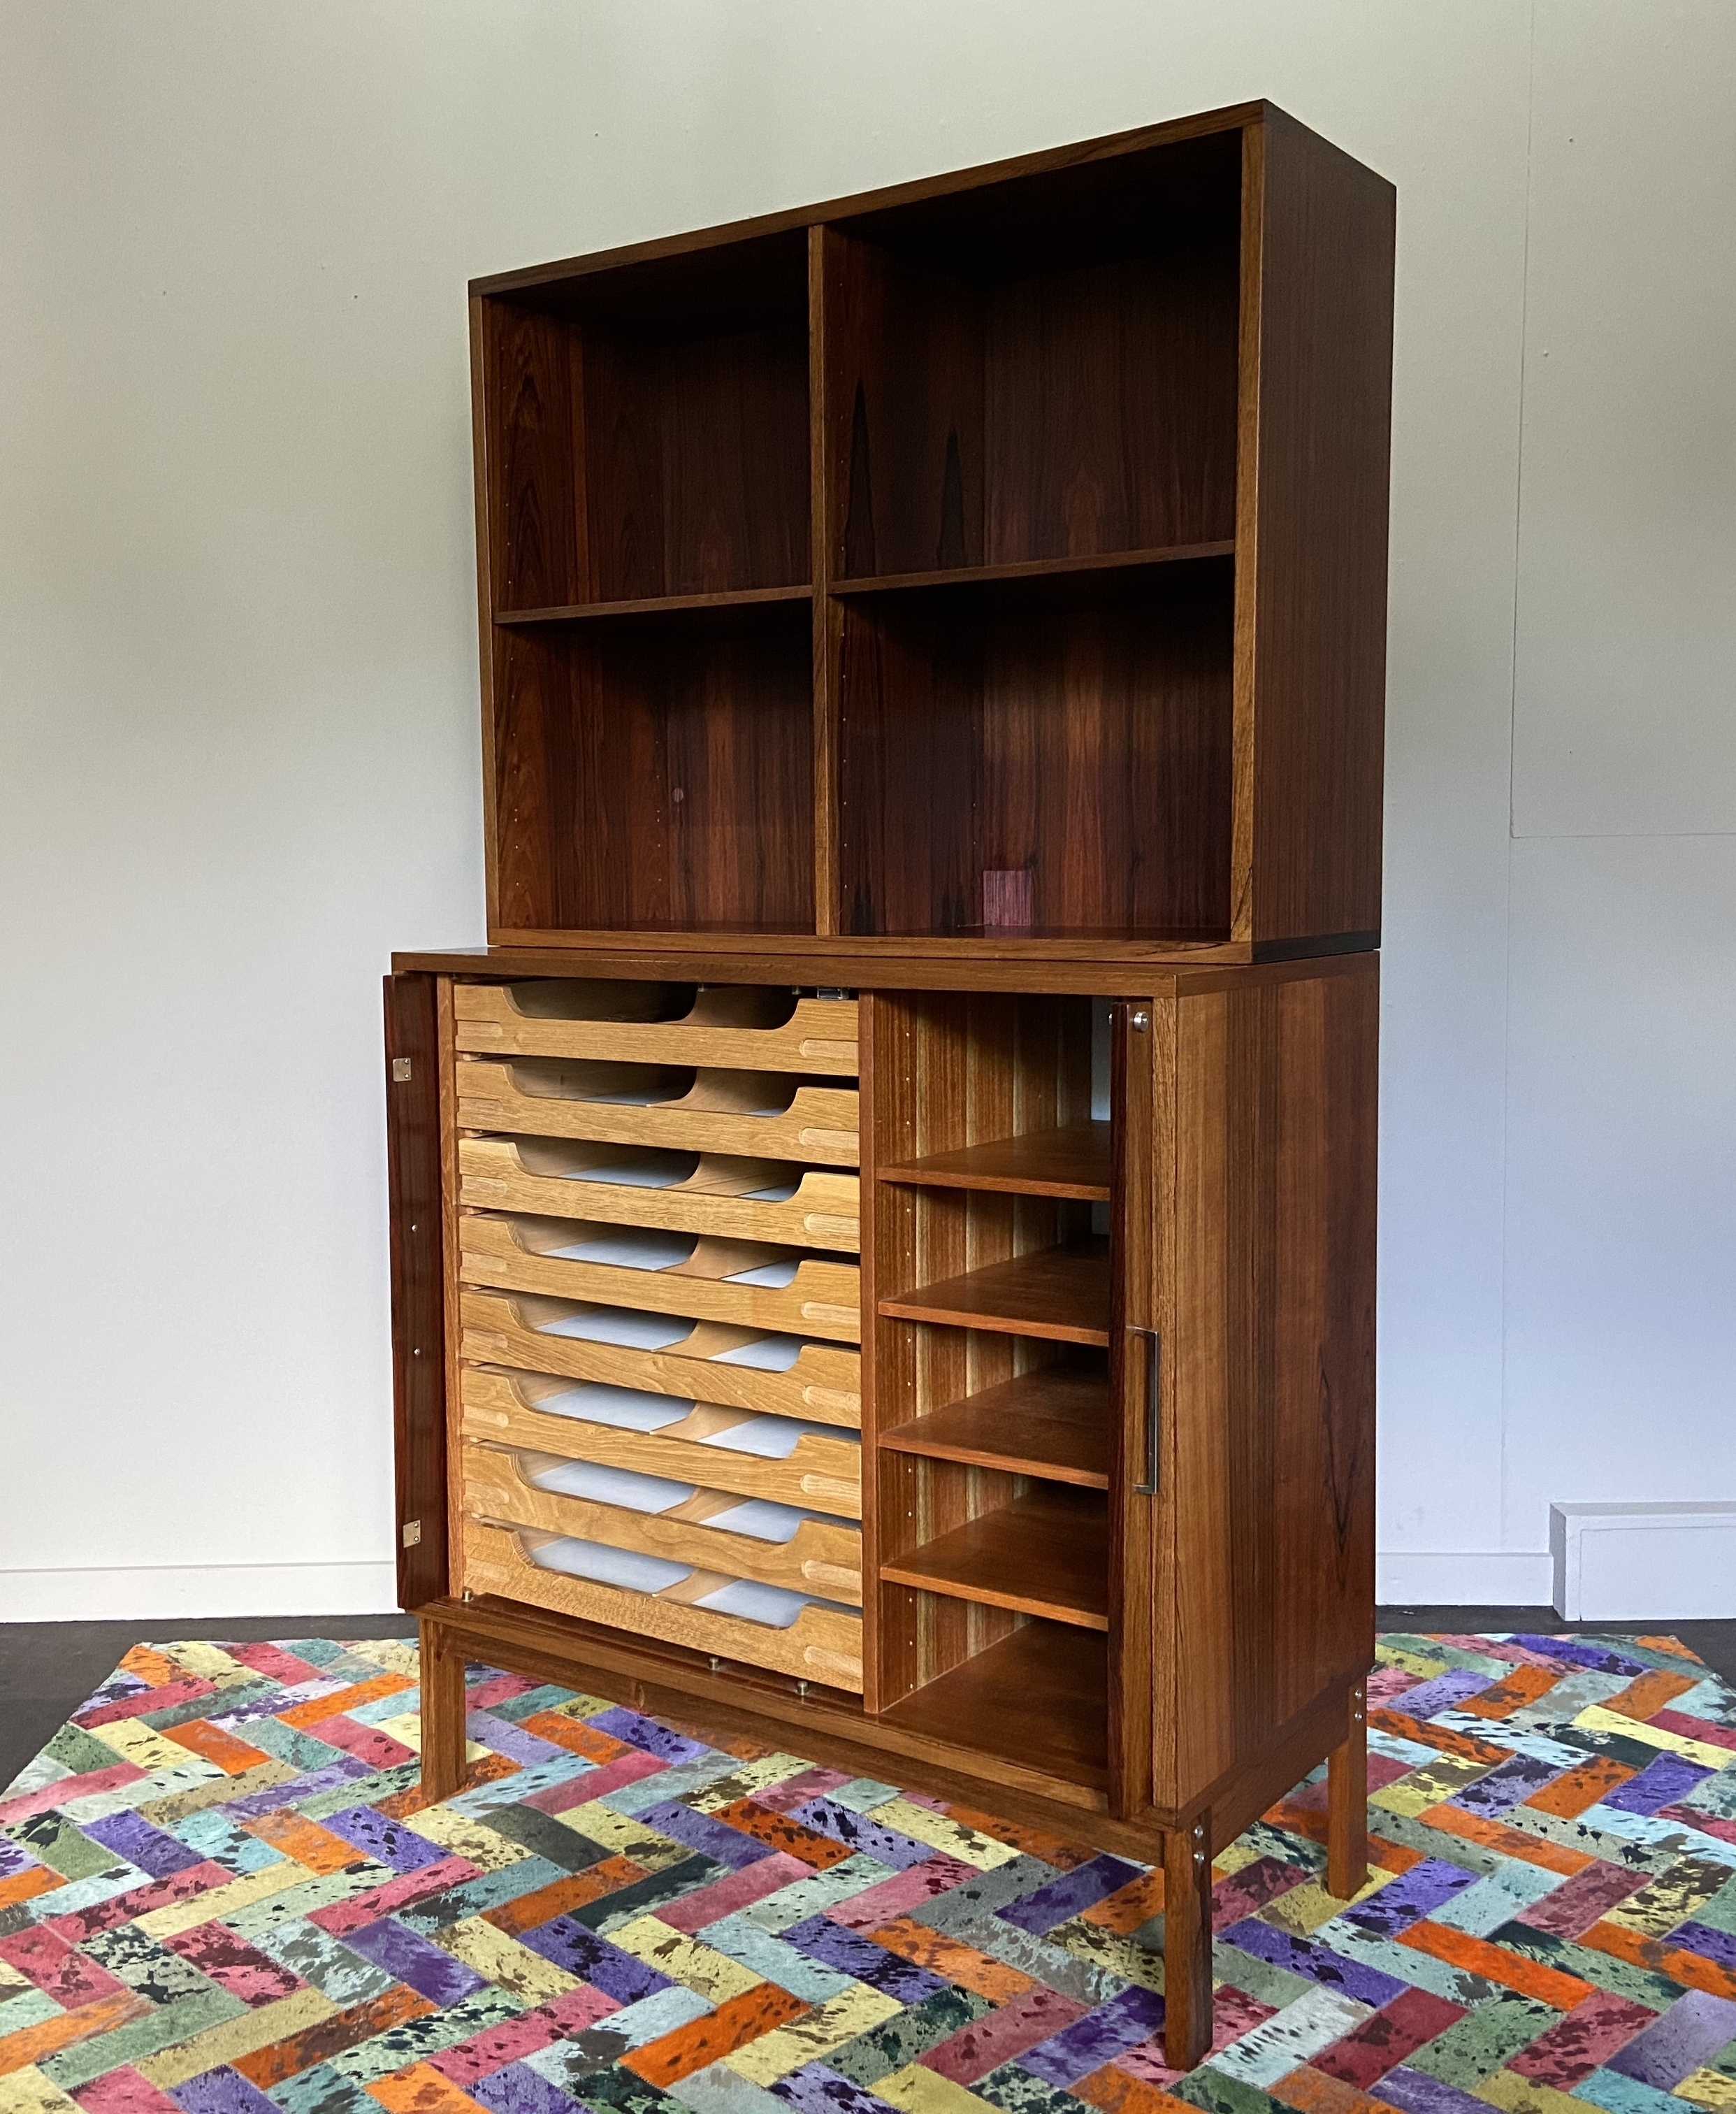 Image of: Danish Rosewood Midcentury Bookcase Chest Of Drawers Sb Mobler Vinterior